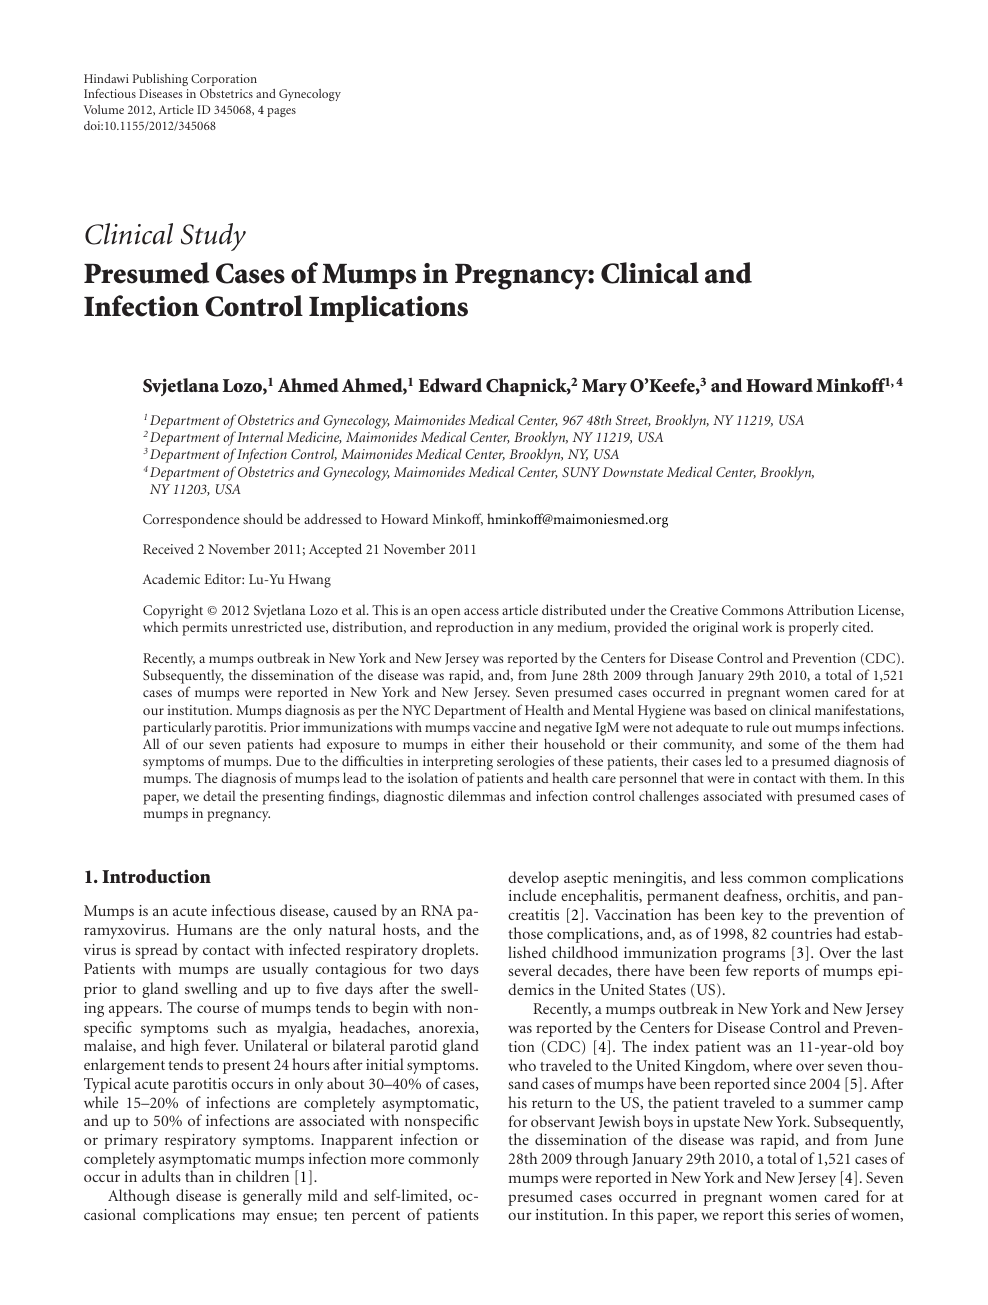 Presumed Cases of Mumps in Pregnancy: Clinical and Infection